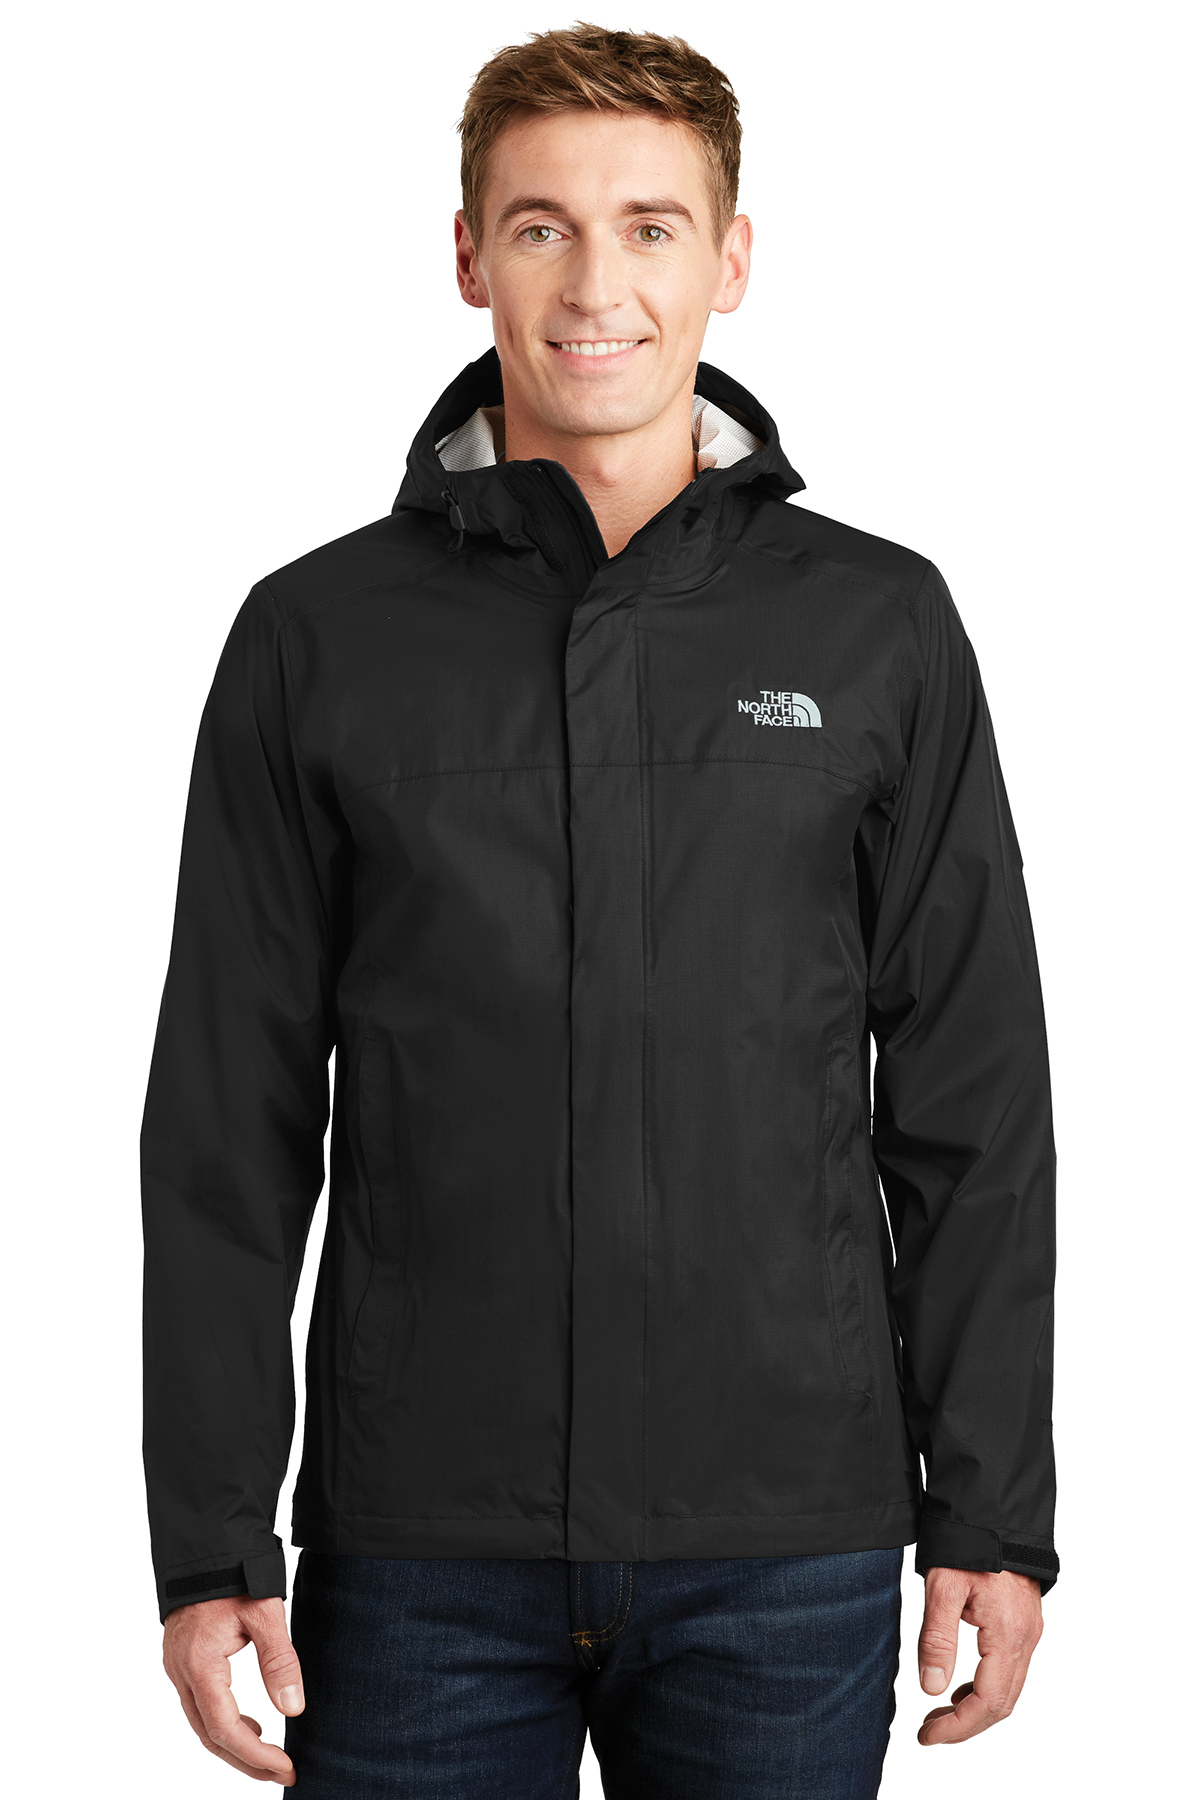 5f874162f The North Face® DryVent™ Rain Jacket | Rainwear | Outerwear ...